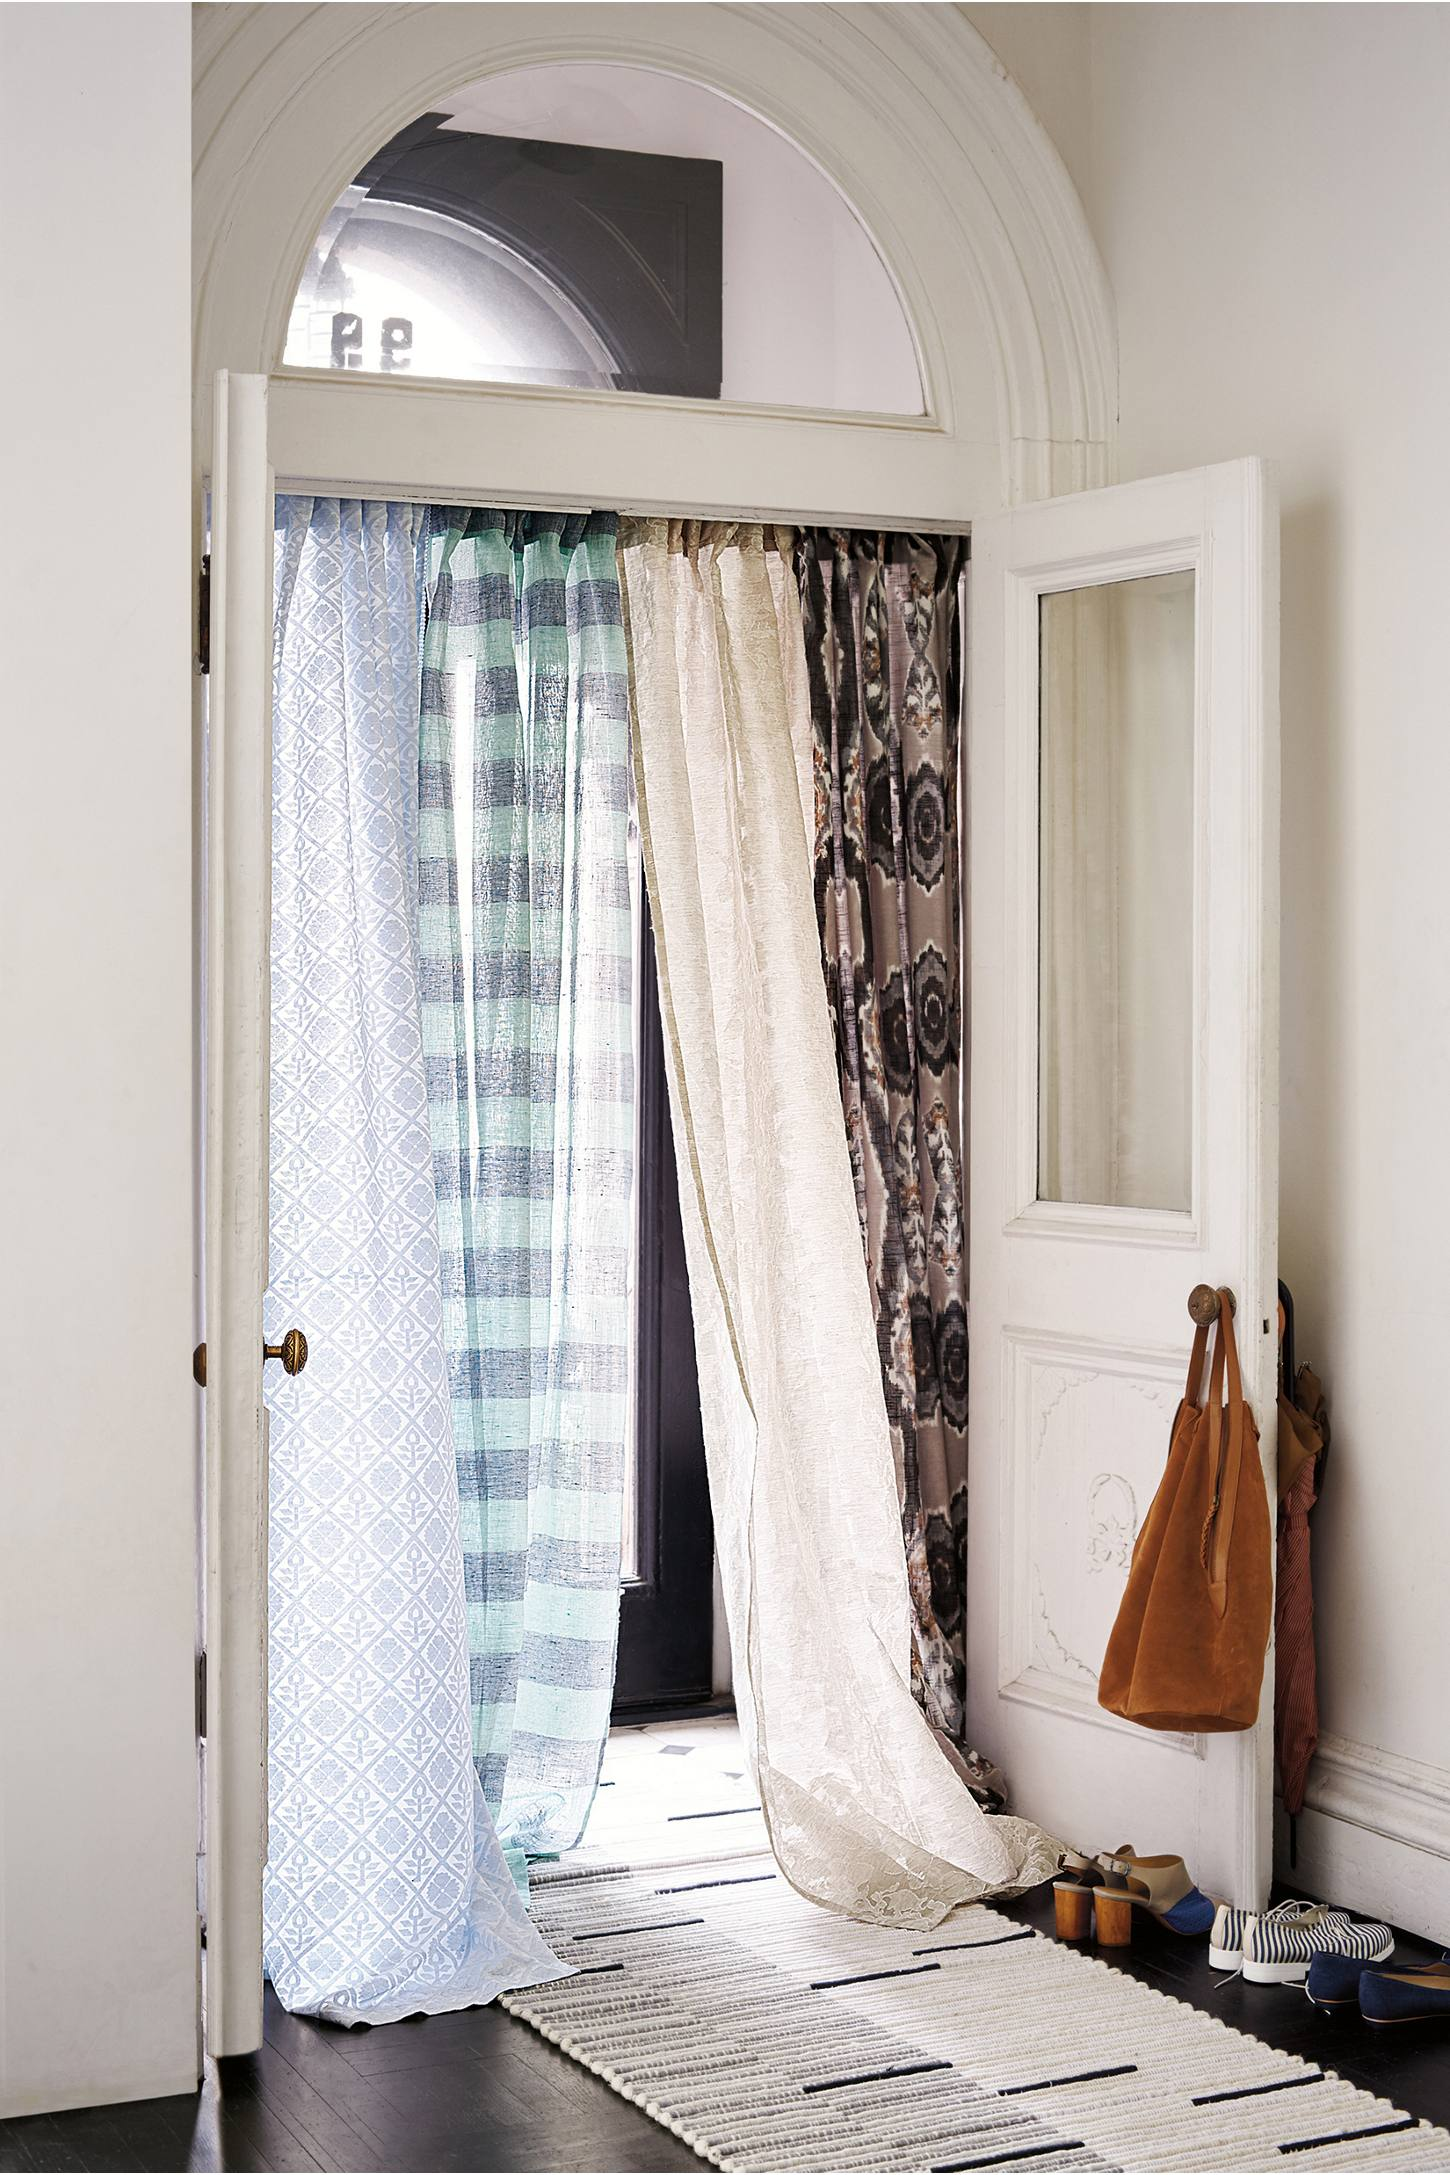 Slide View: 3: Quadrille Curtain